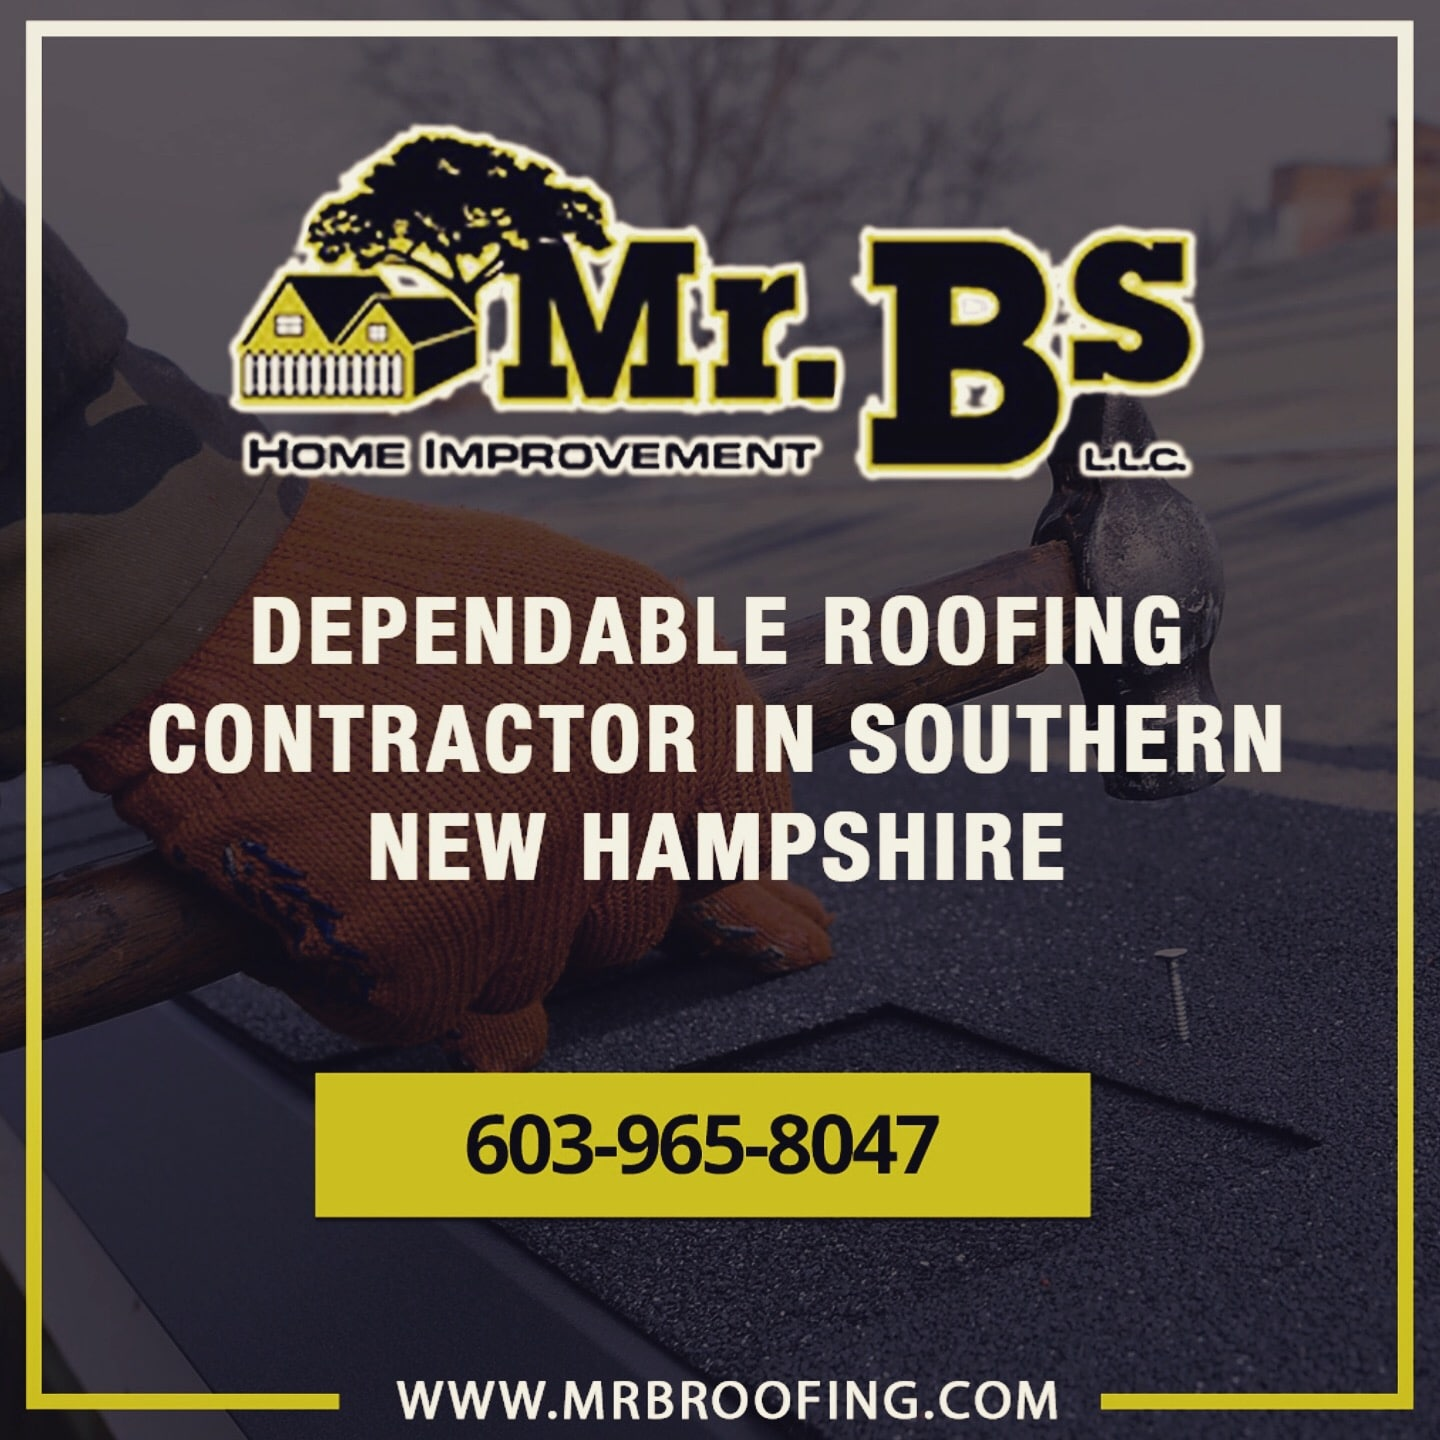 MR. Bs Roofing LLC logo